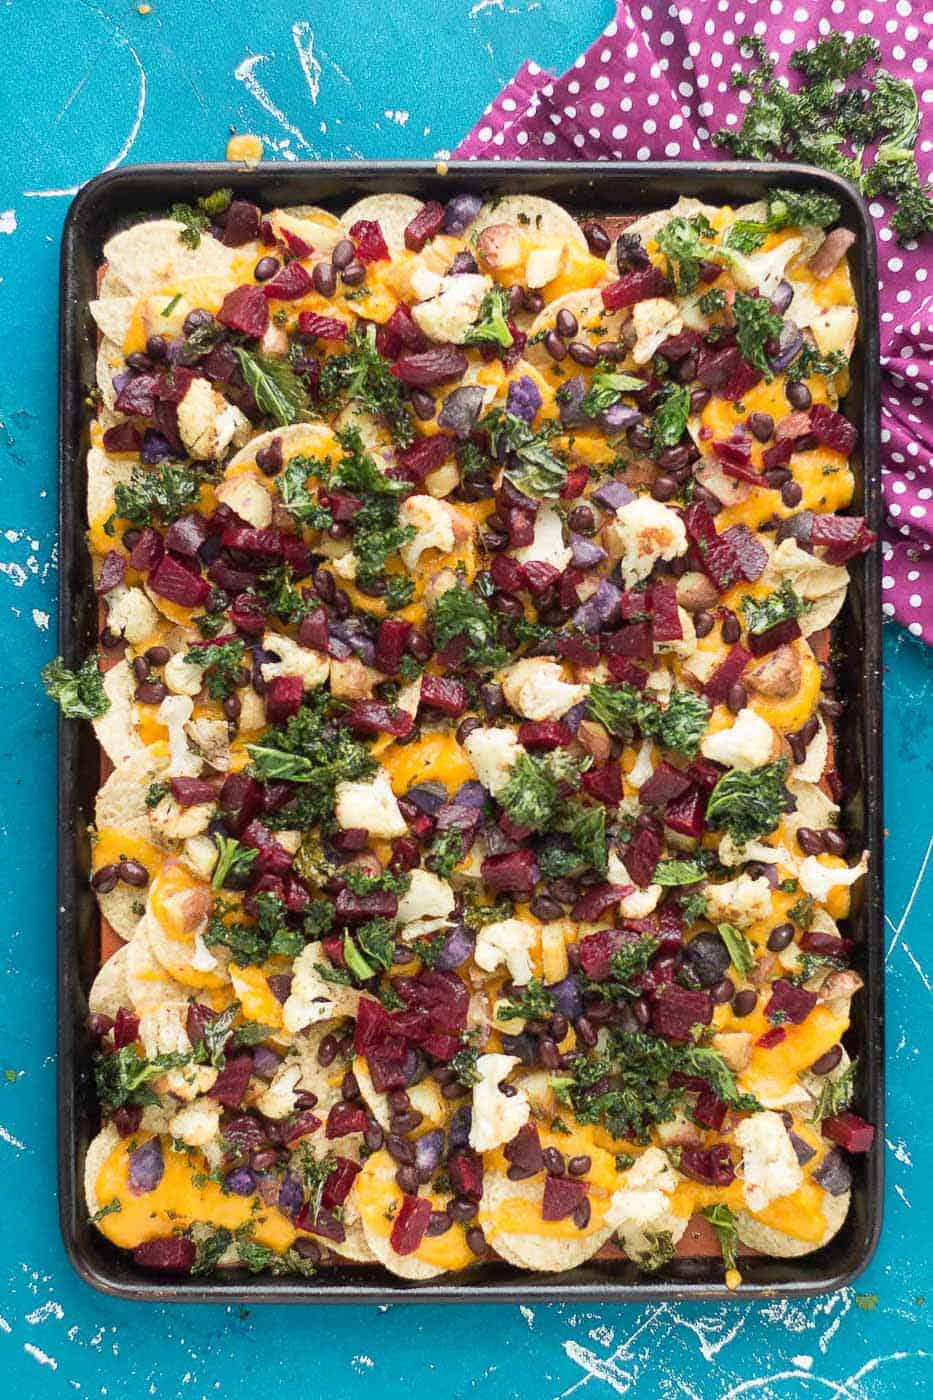 Fall Bounty Sheet Pan Nachos have butternut squash nacho cheese sauce, black beans, kale, roasted cauliflower and beets to give you the ultimate in snacking with all of Fall's delicious produce! | Strawberry Blondie Kitchen